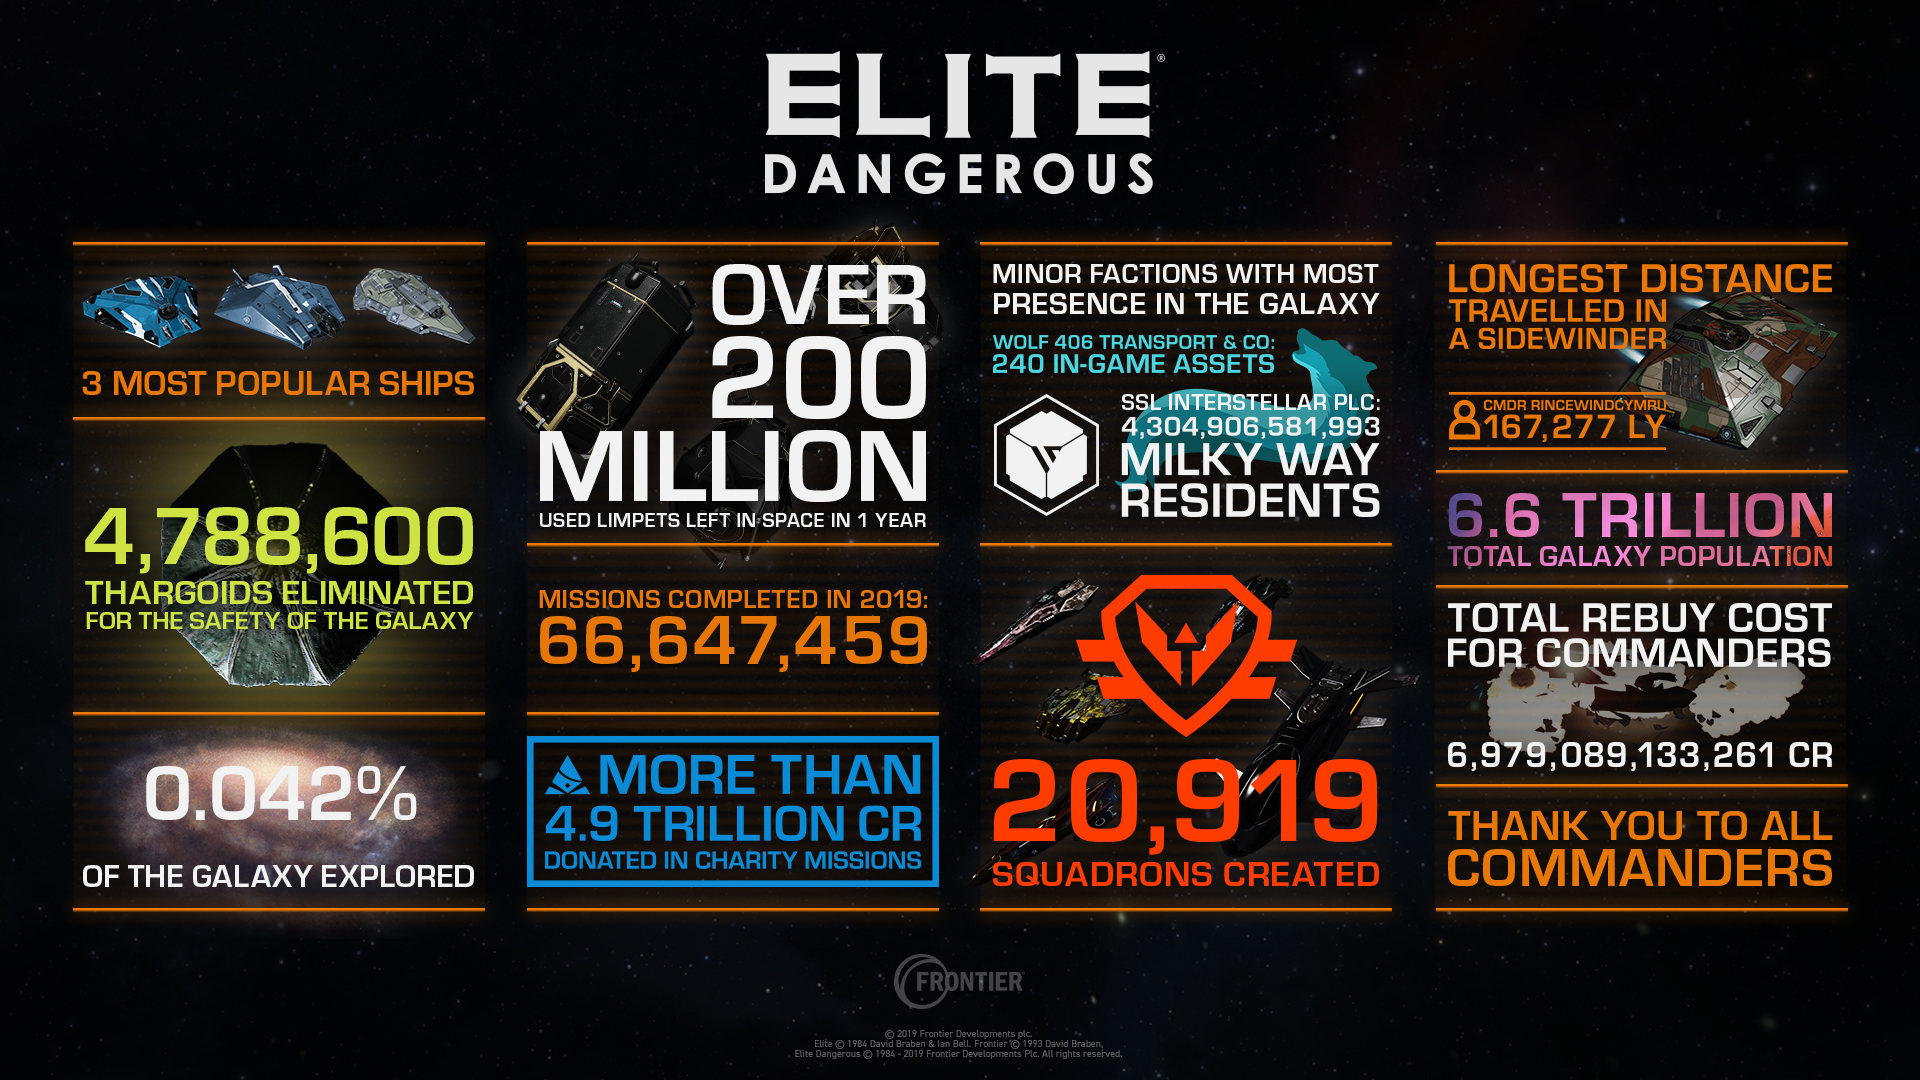 https://community-cdn.frontier.co.uk/elite-dangerous/5thanniv/ED_infographic_1920x1080.jpg